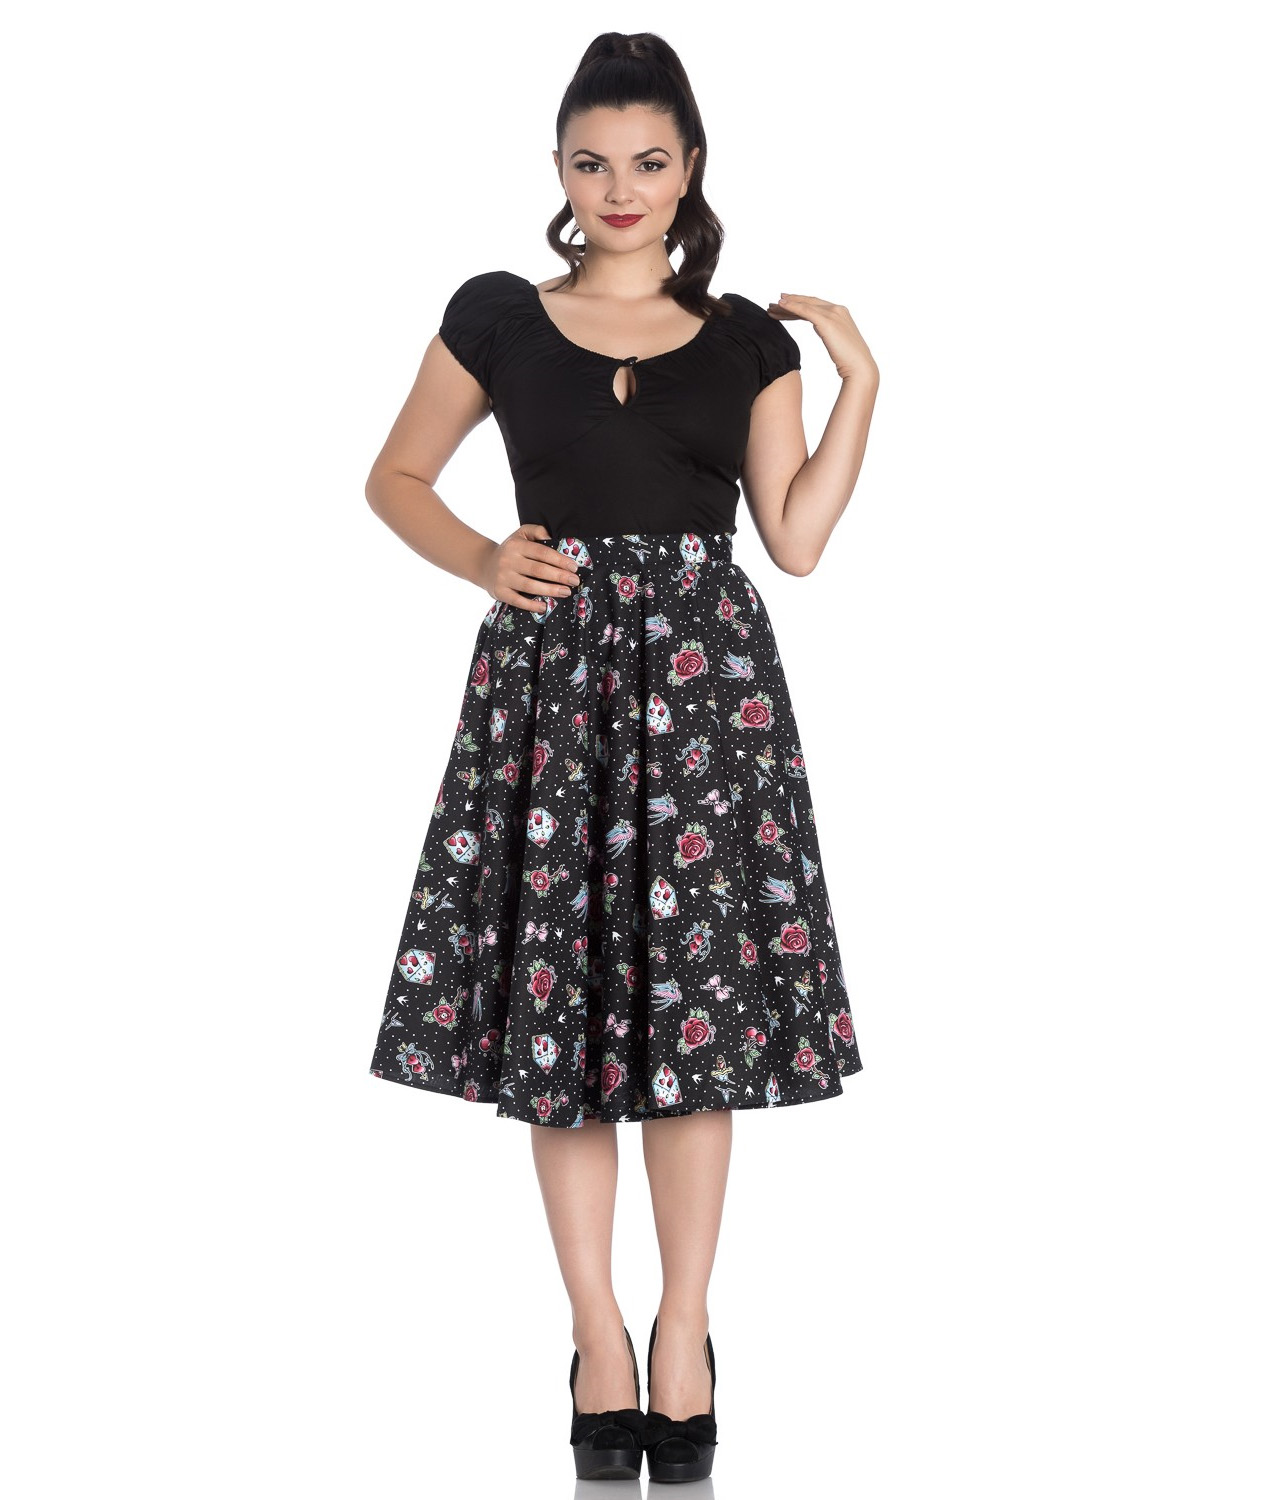 3179fe387ca7 Sentinel Hell Bunny 50s Skirt Vintage Rockabilly Cherry Swallow STEVIE  Tattoo All Sizes